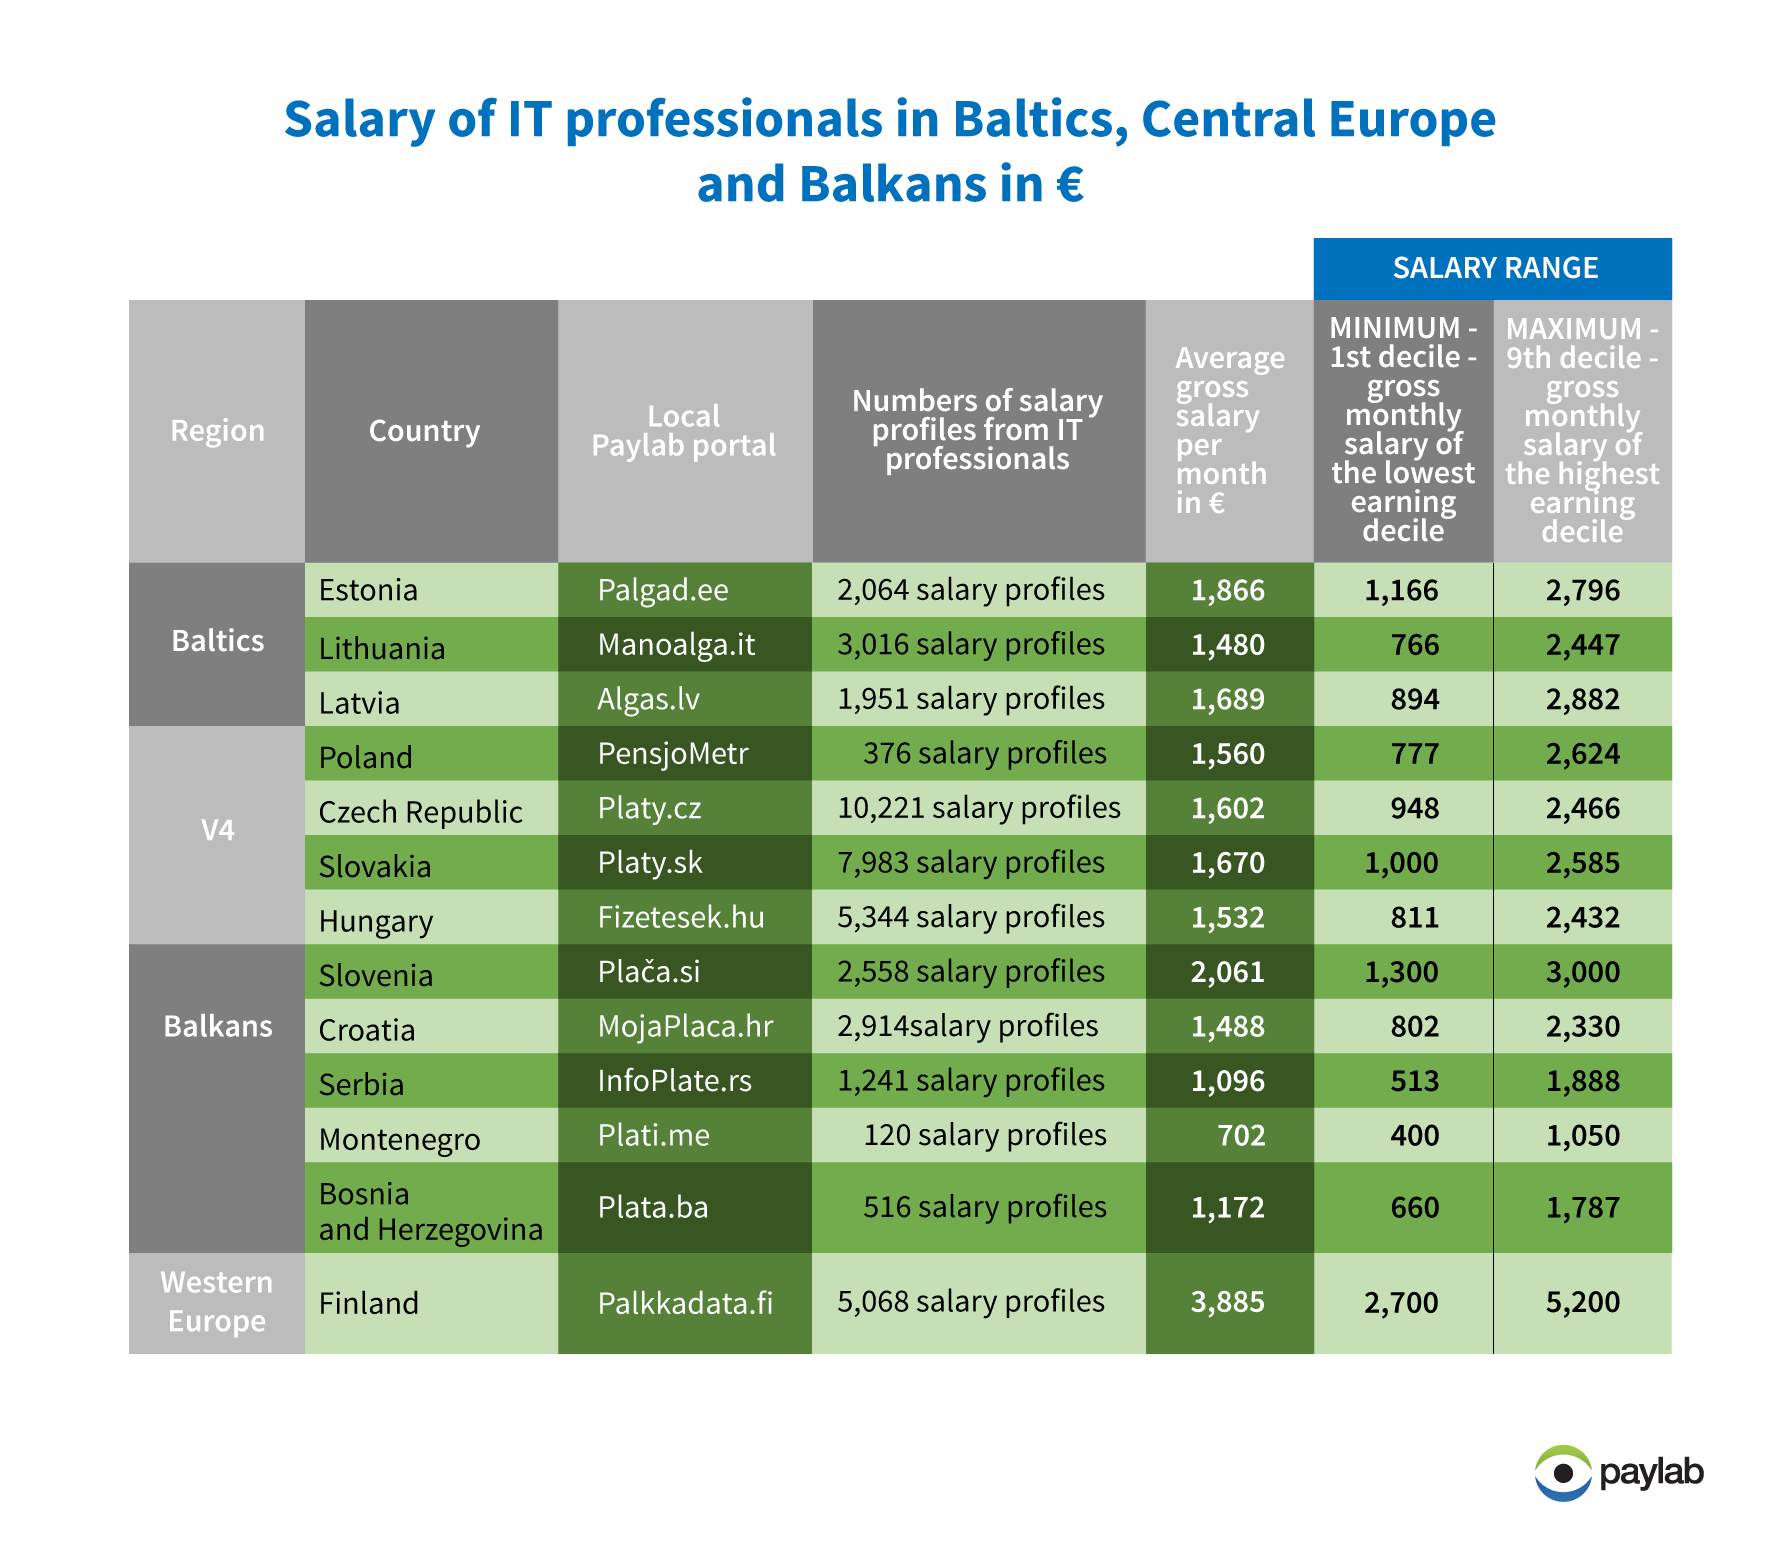 Salary Slovakia, Czech Republic, Hungary, Latvia, Lithuania, Estonia, Croatia, Montenegro, Serbia, Bosnia and Herzegovina